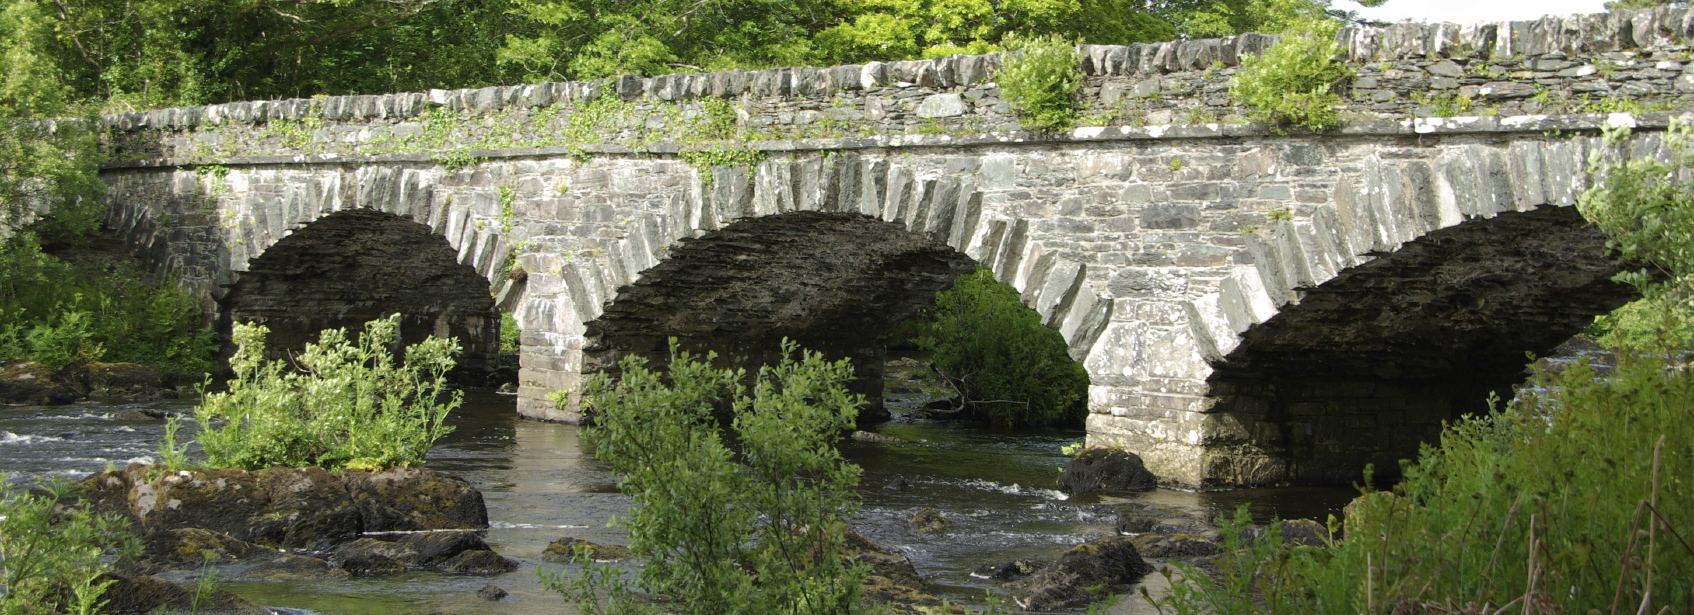 Irish_Bridge_Medium_2.jpg